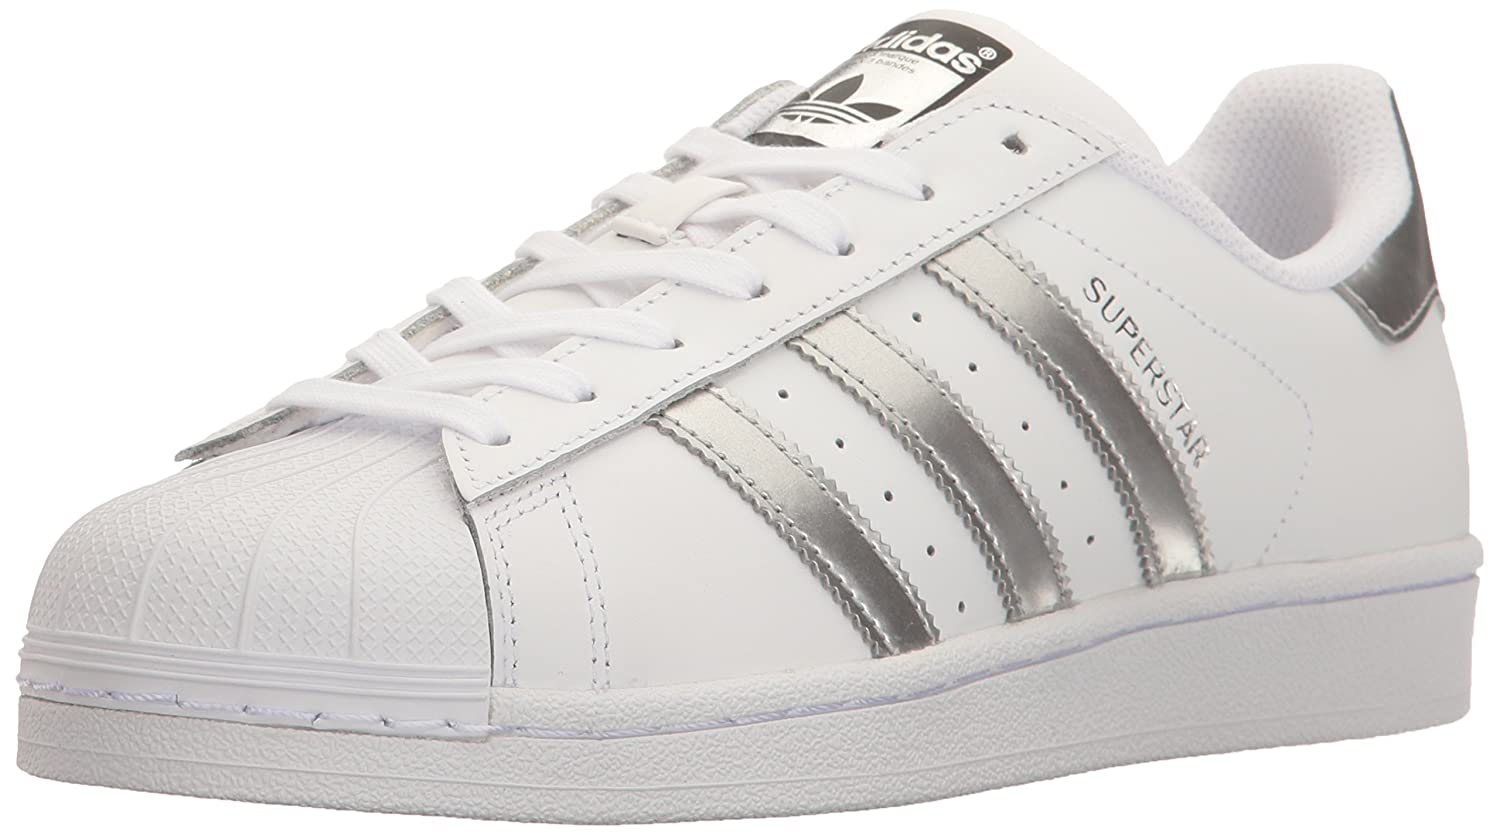 99dfdc8015c ... official store amazon adidas originals womens superstar fashion  sneakers fashion sneakers abc22 90749